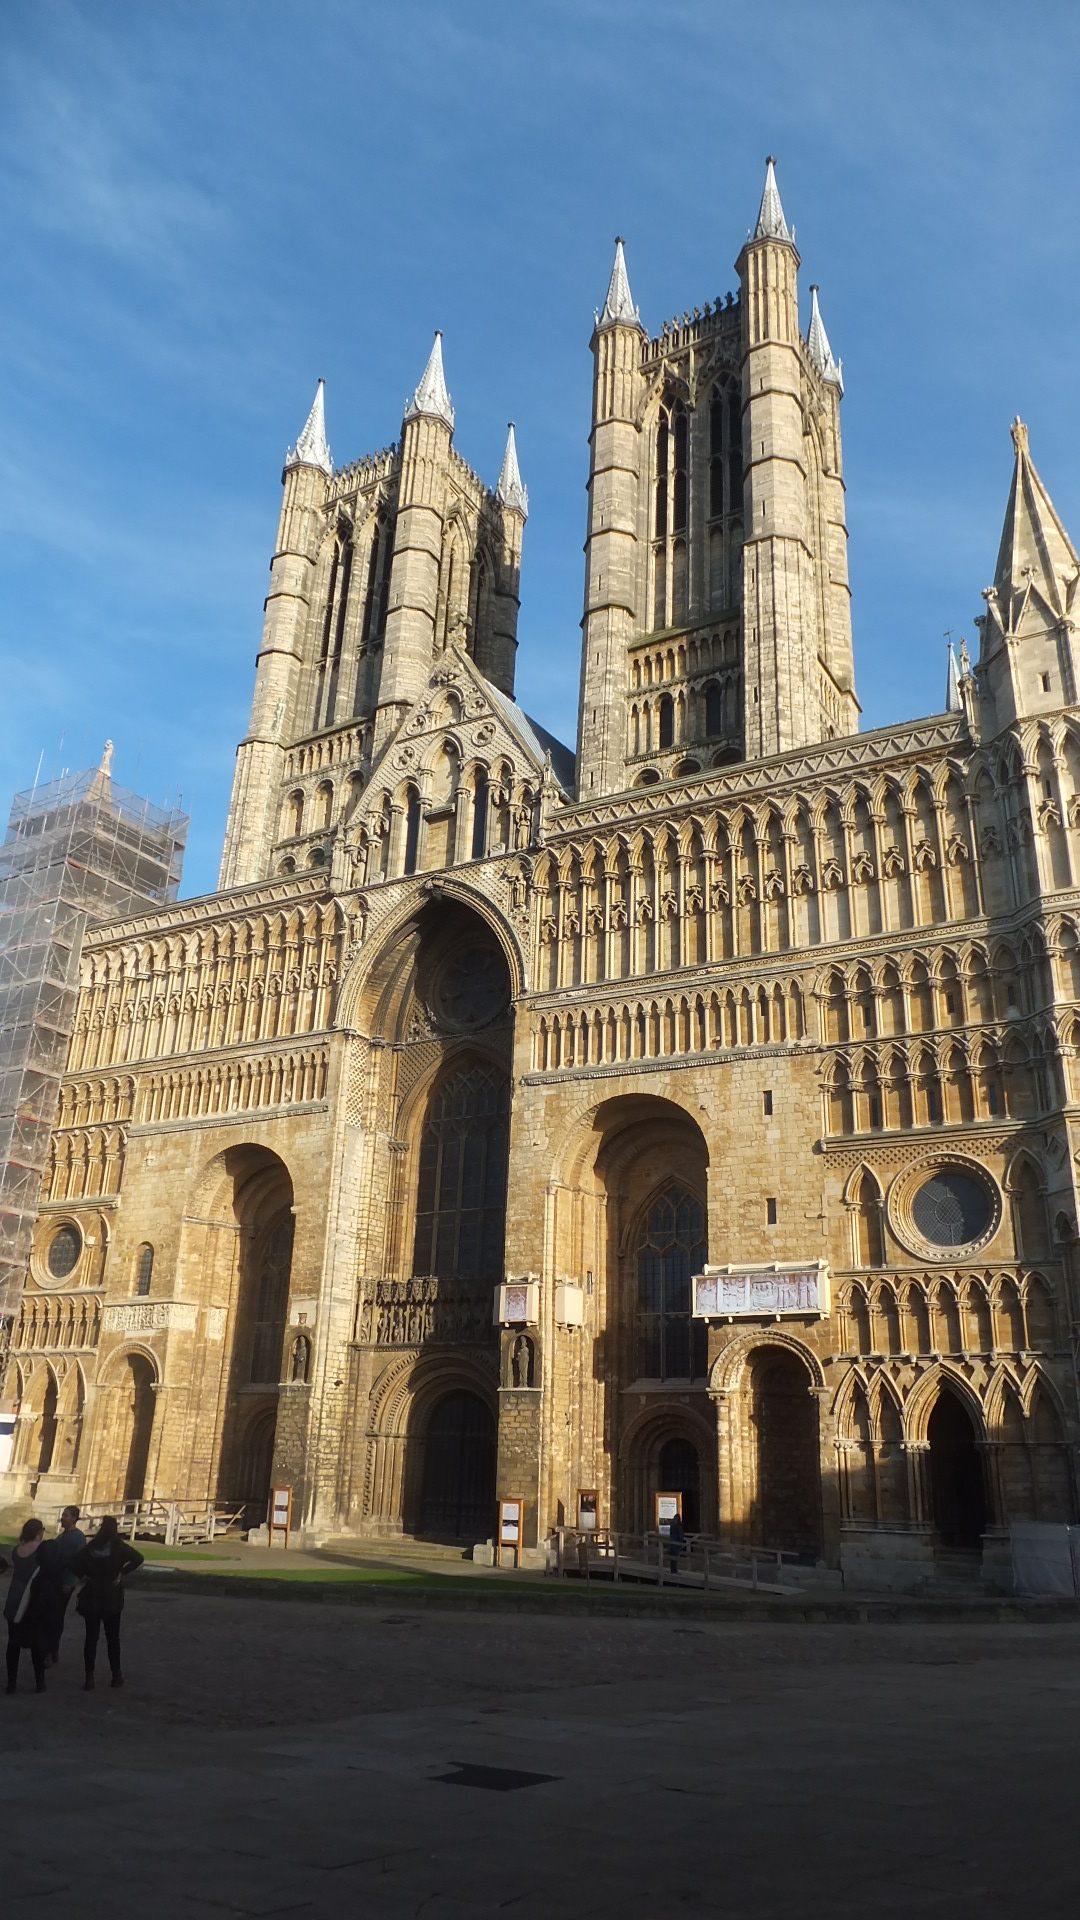 The majestic Lincoln Cathedral.